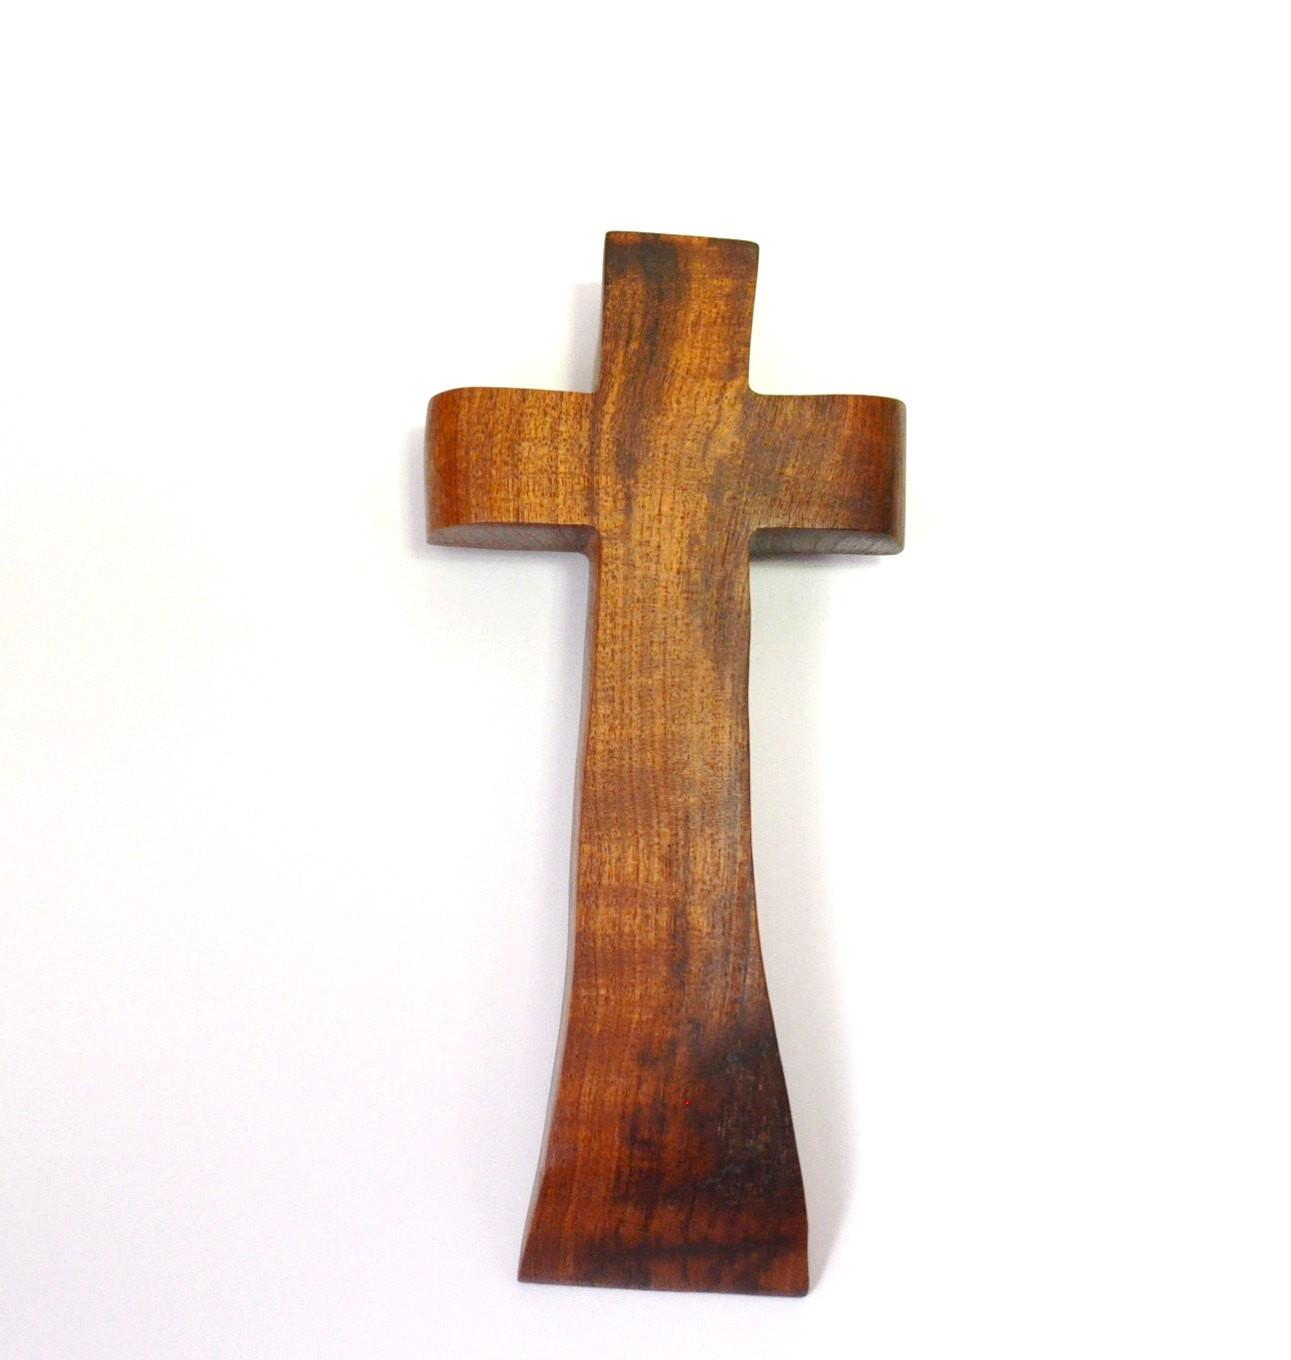 Wood Cross Your Wall Decor Rustic